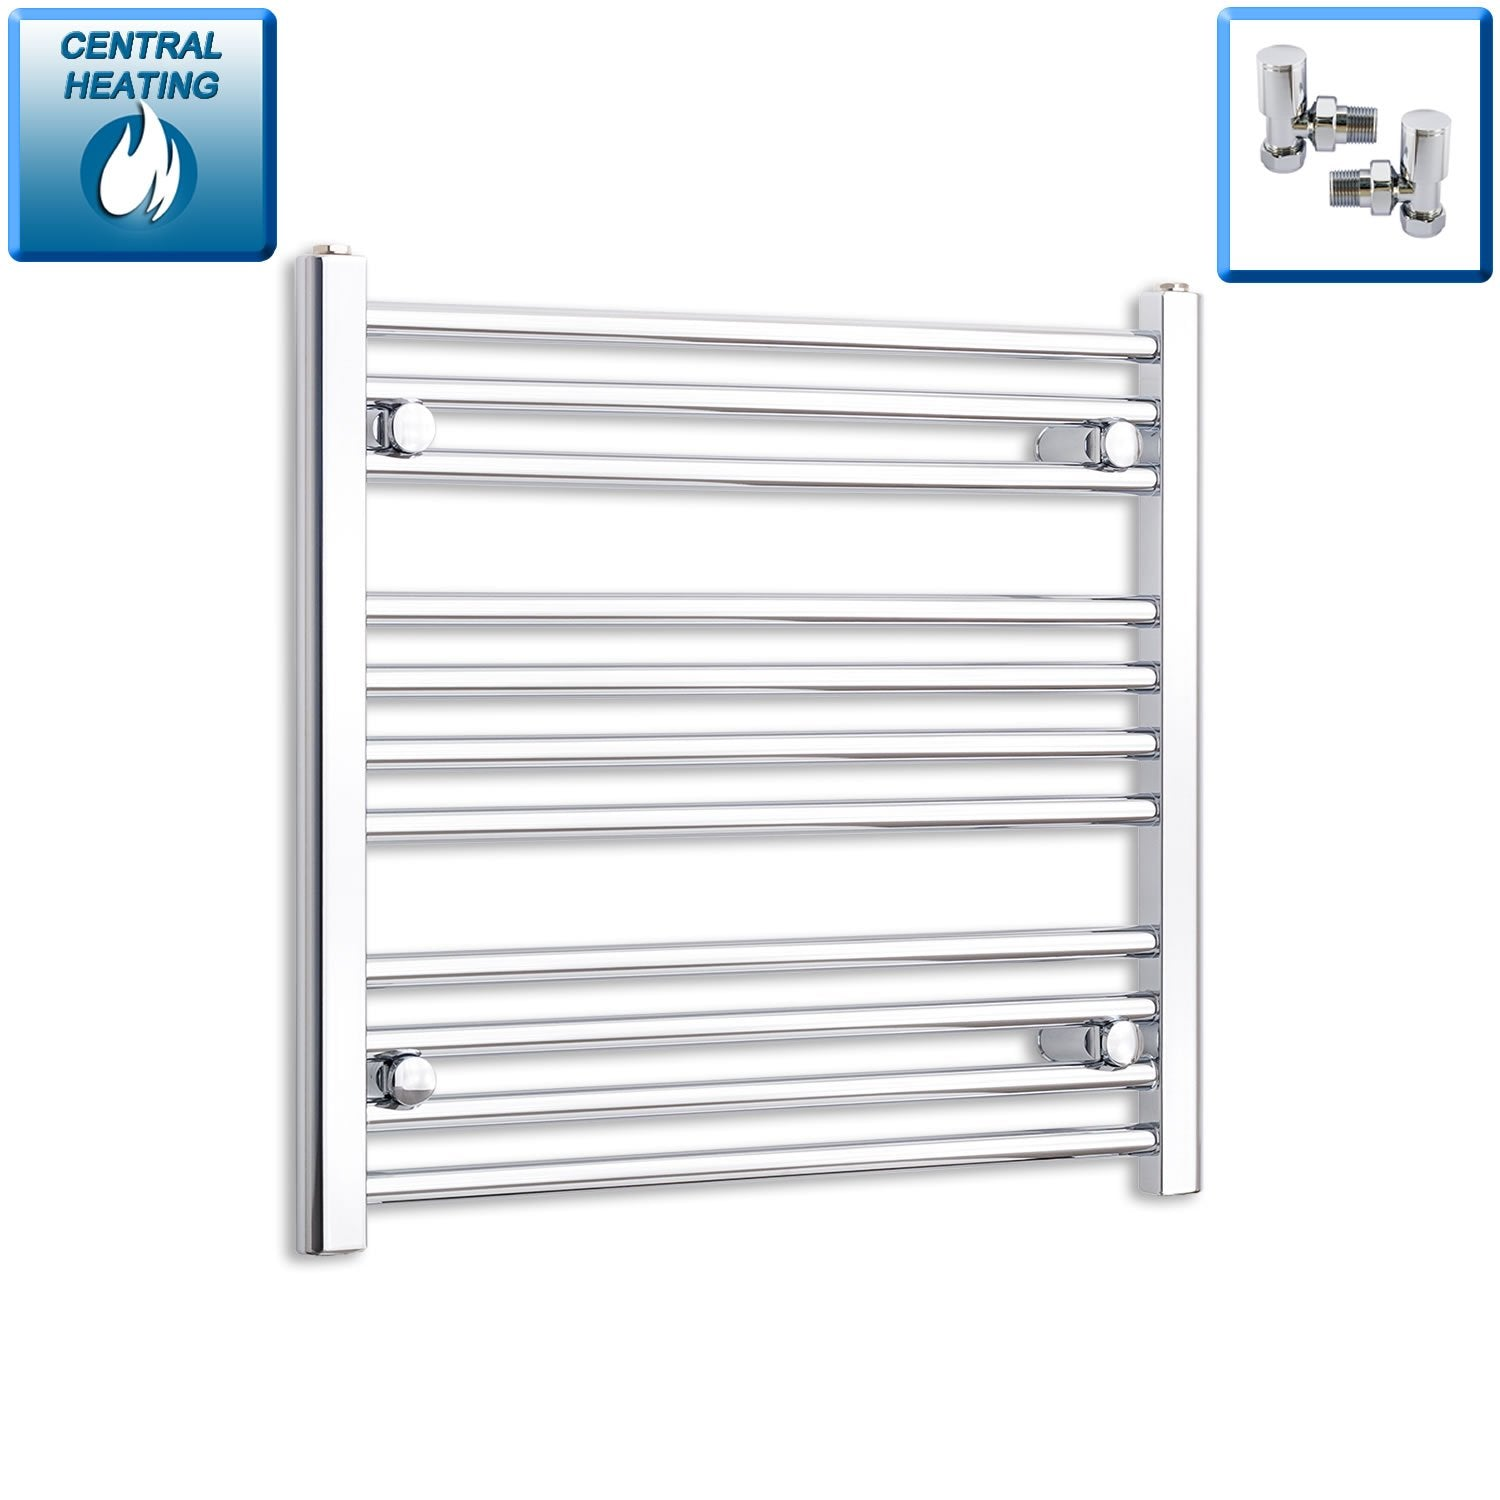 700mm Wide 600mm High Curved Chrome Heated Towel Rail Radiator HTR,With Angled Valve